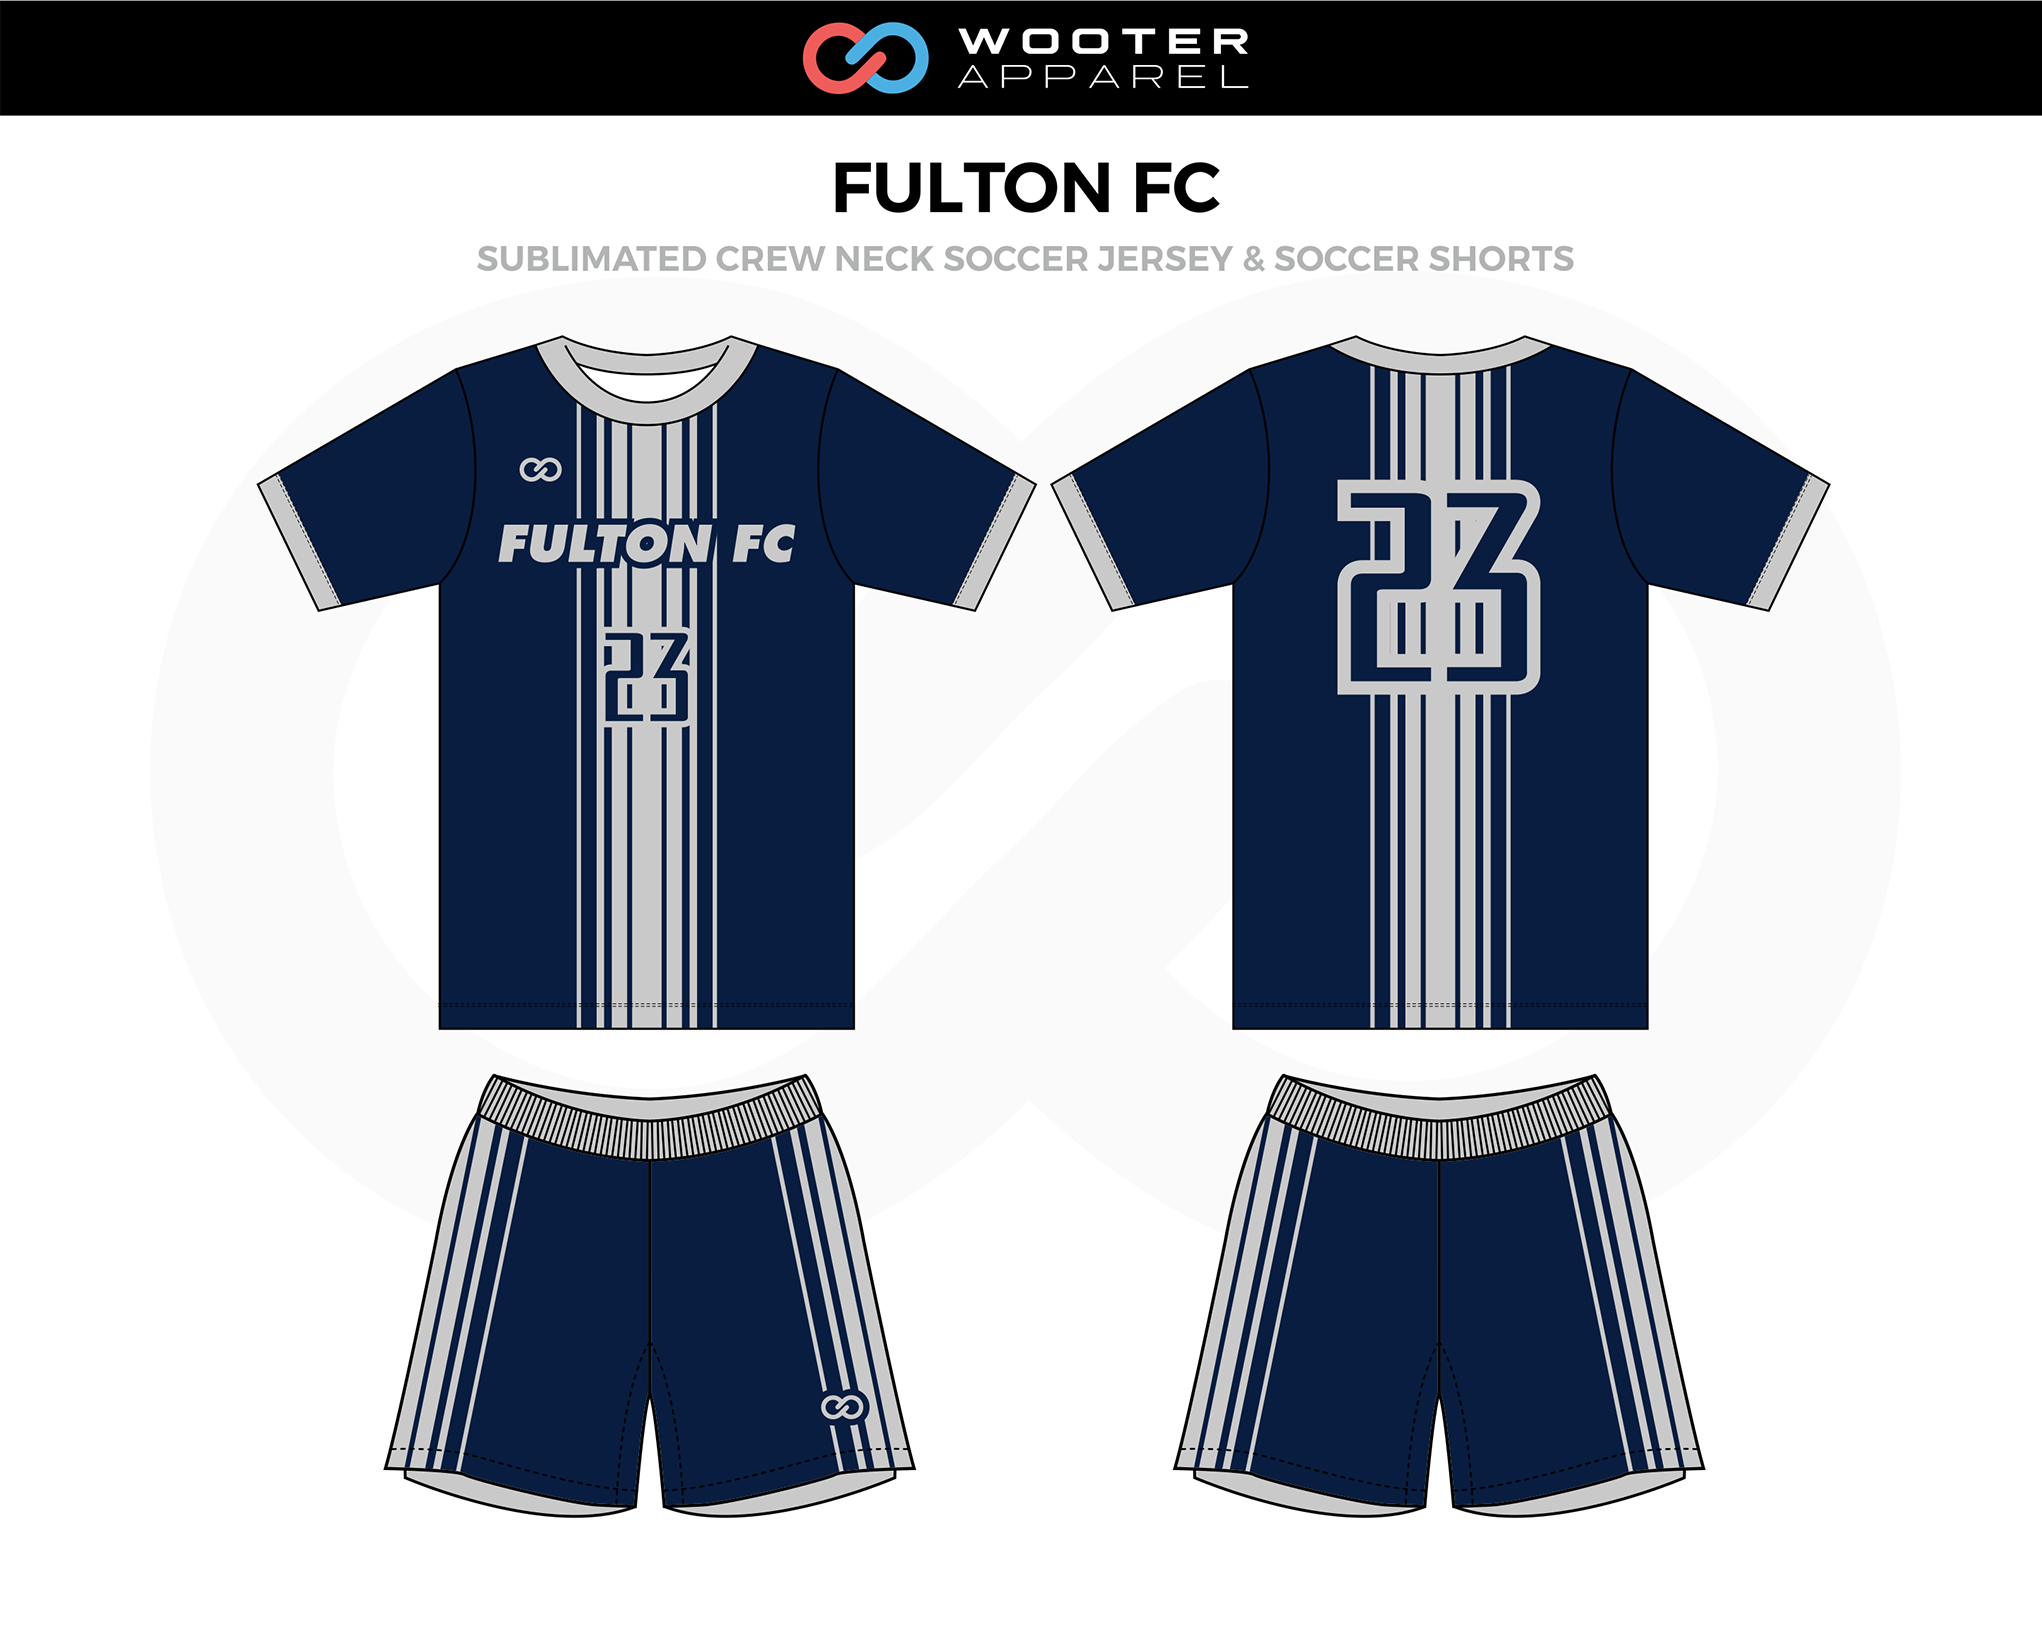 FULTON FC Navy Blue White Crew Neck Soccer Uniform, Jerseys, and Shorts